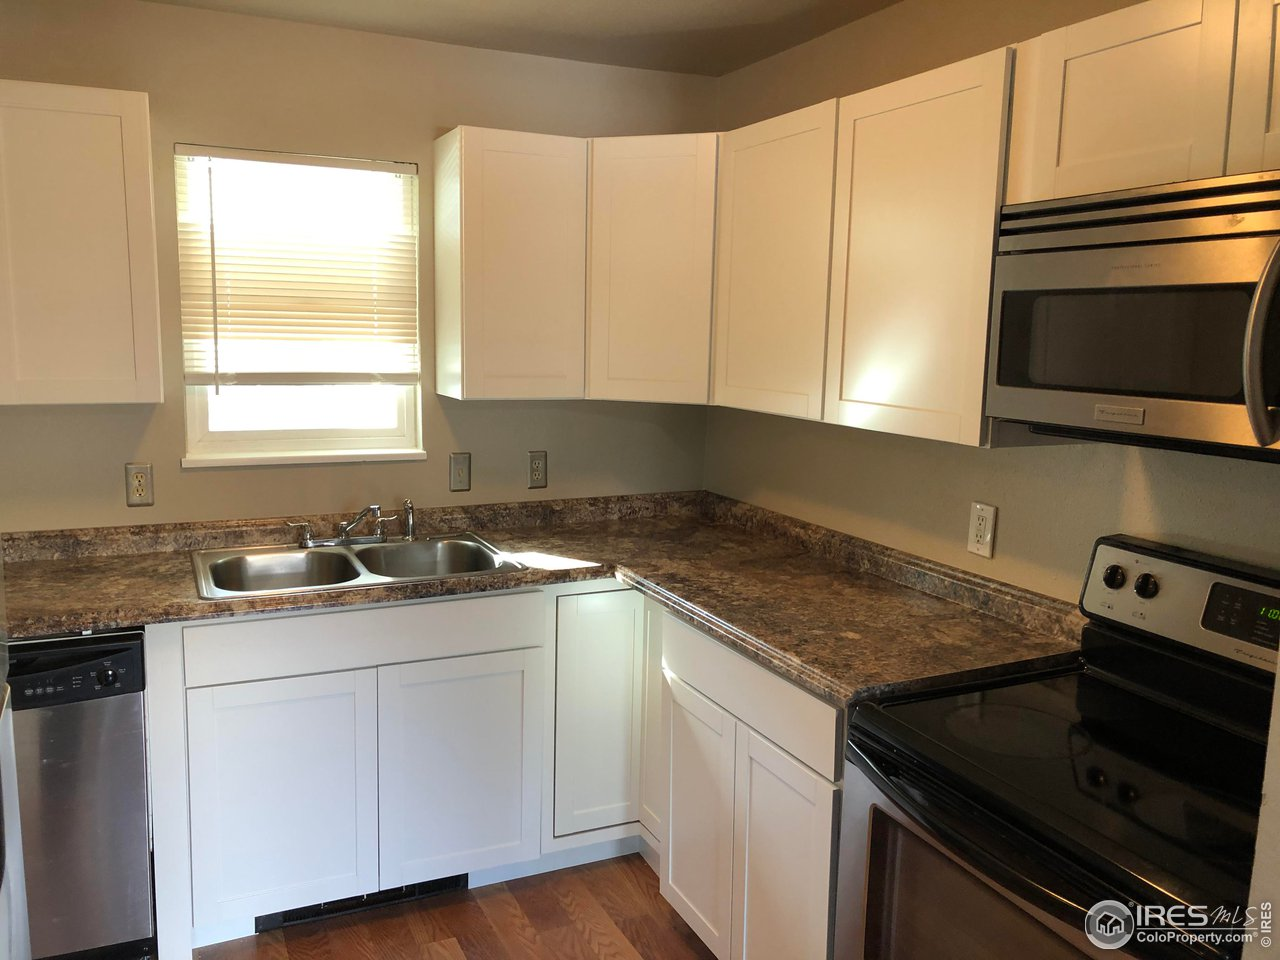 New Cabinets and Countertops in Kitchen